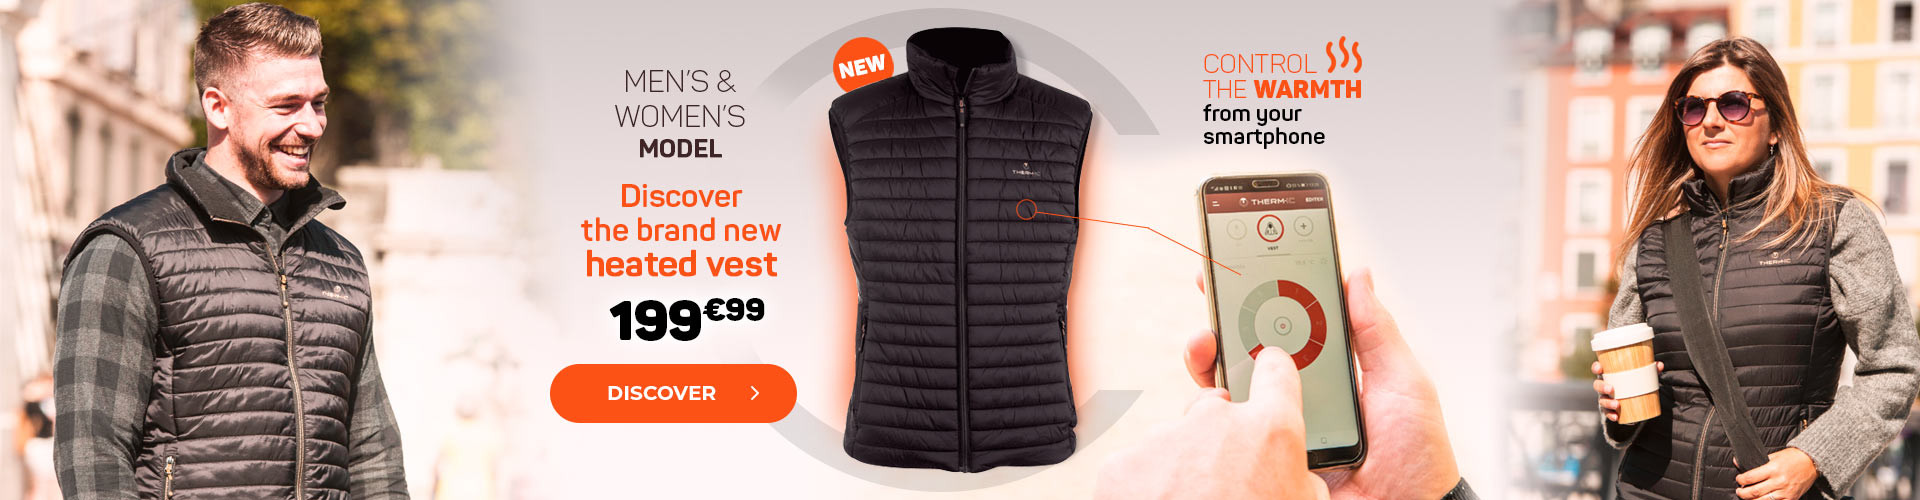 Discover the brand new heated vest!